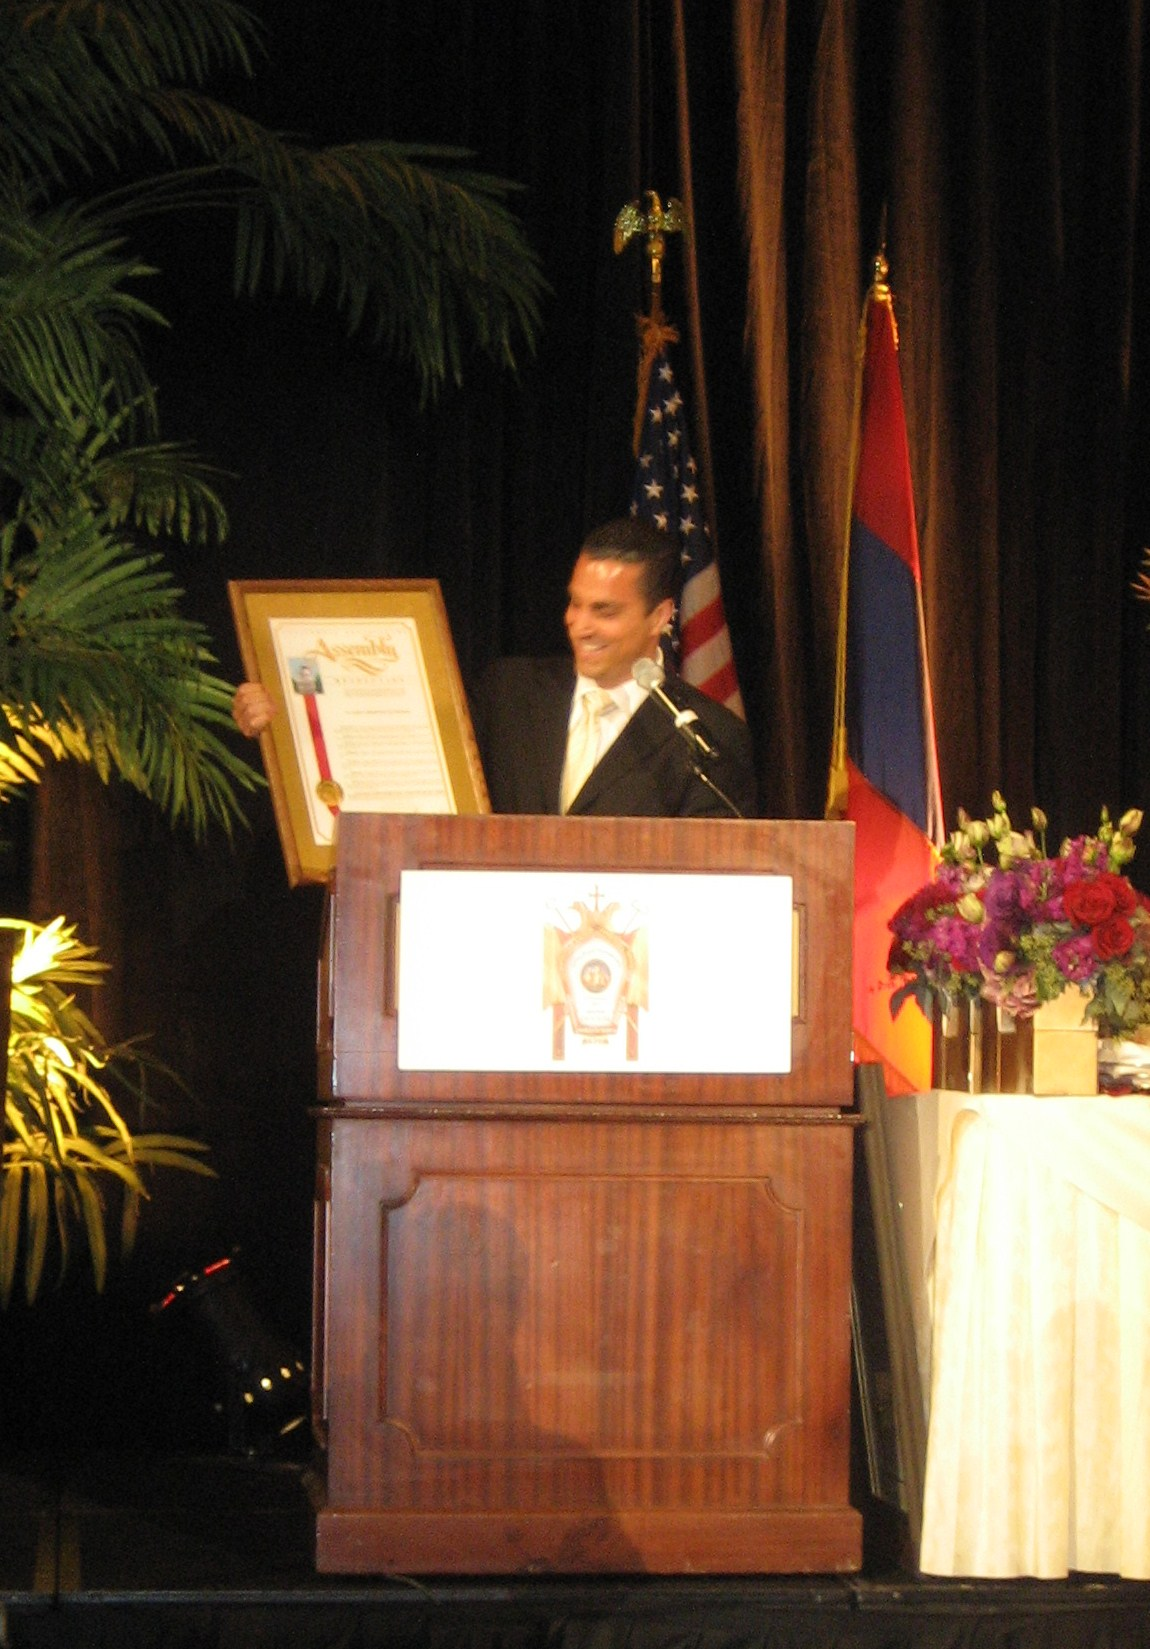 Assemblyman Mike Gatto presenting Resolution honoring the Western Diocese of the Armenian Church St. Leon Cathedral at the celebratory gala banquet.